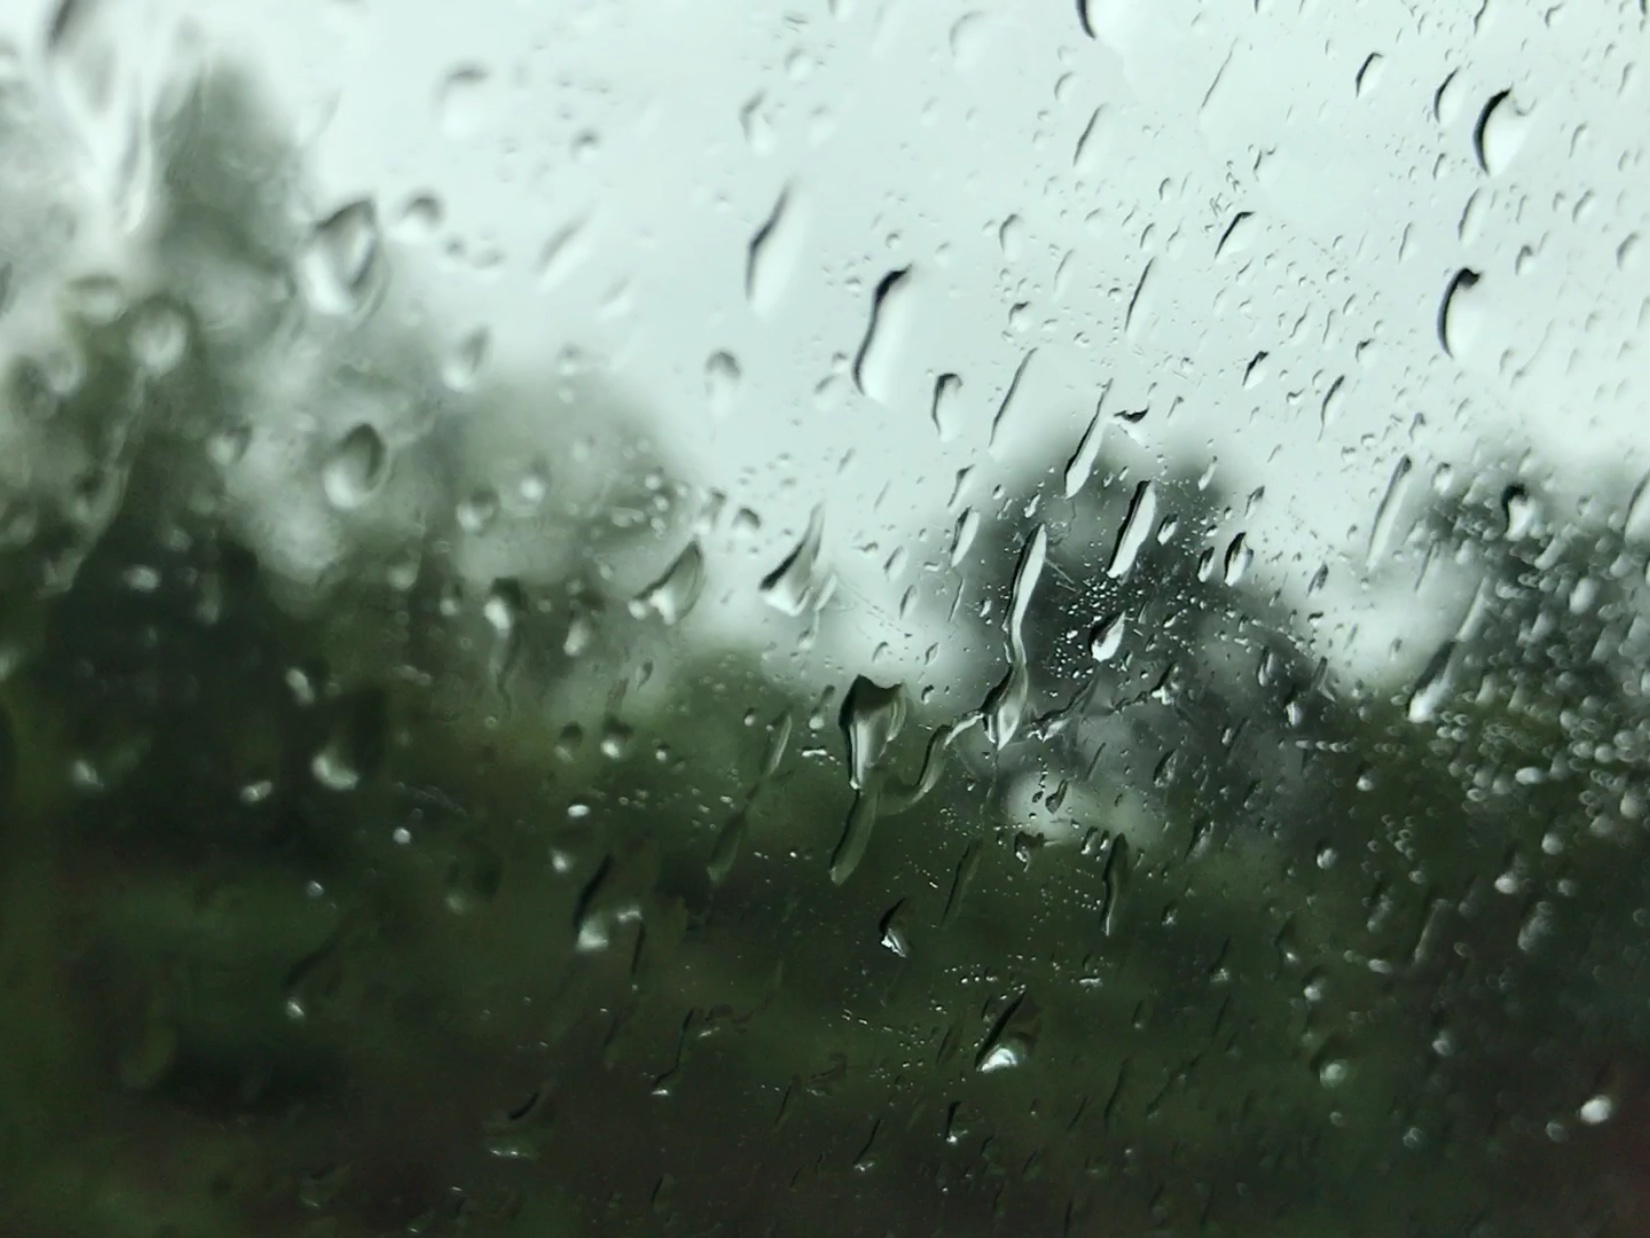 Raindrops Falling on Moving Car Window